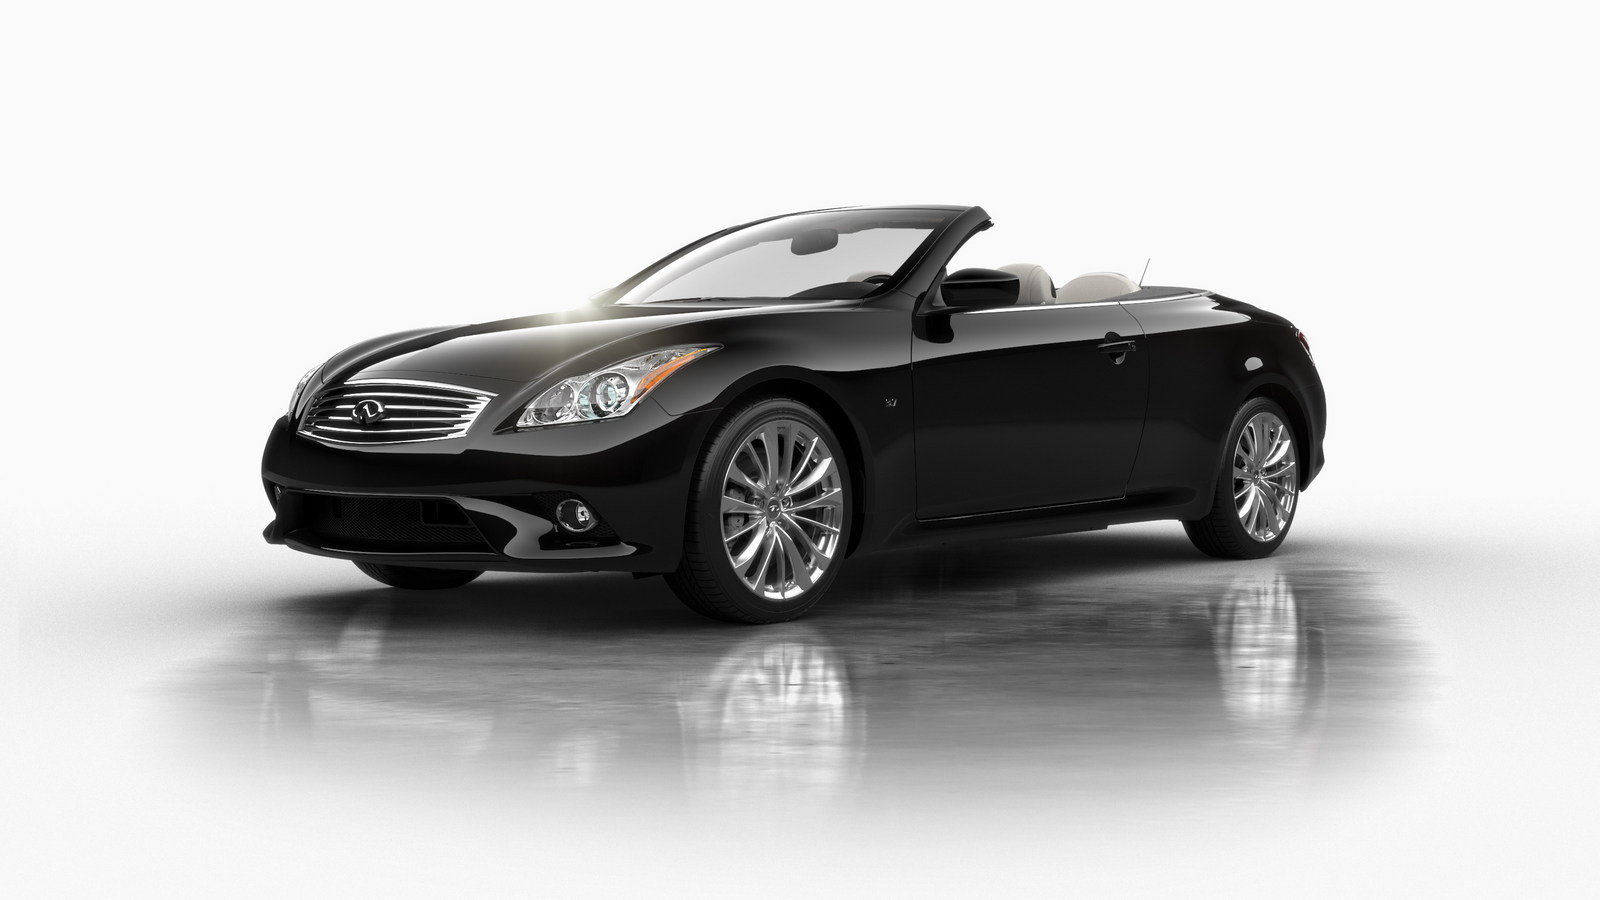 2014 infiniti q60 convertible picture 560307 car review top speed. Black Bedroom Furniture Sets. Home Design Ideas